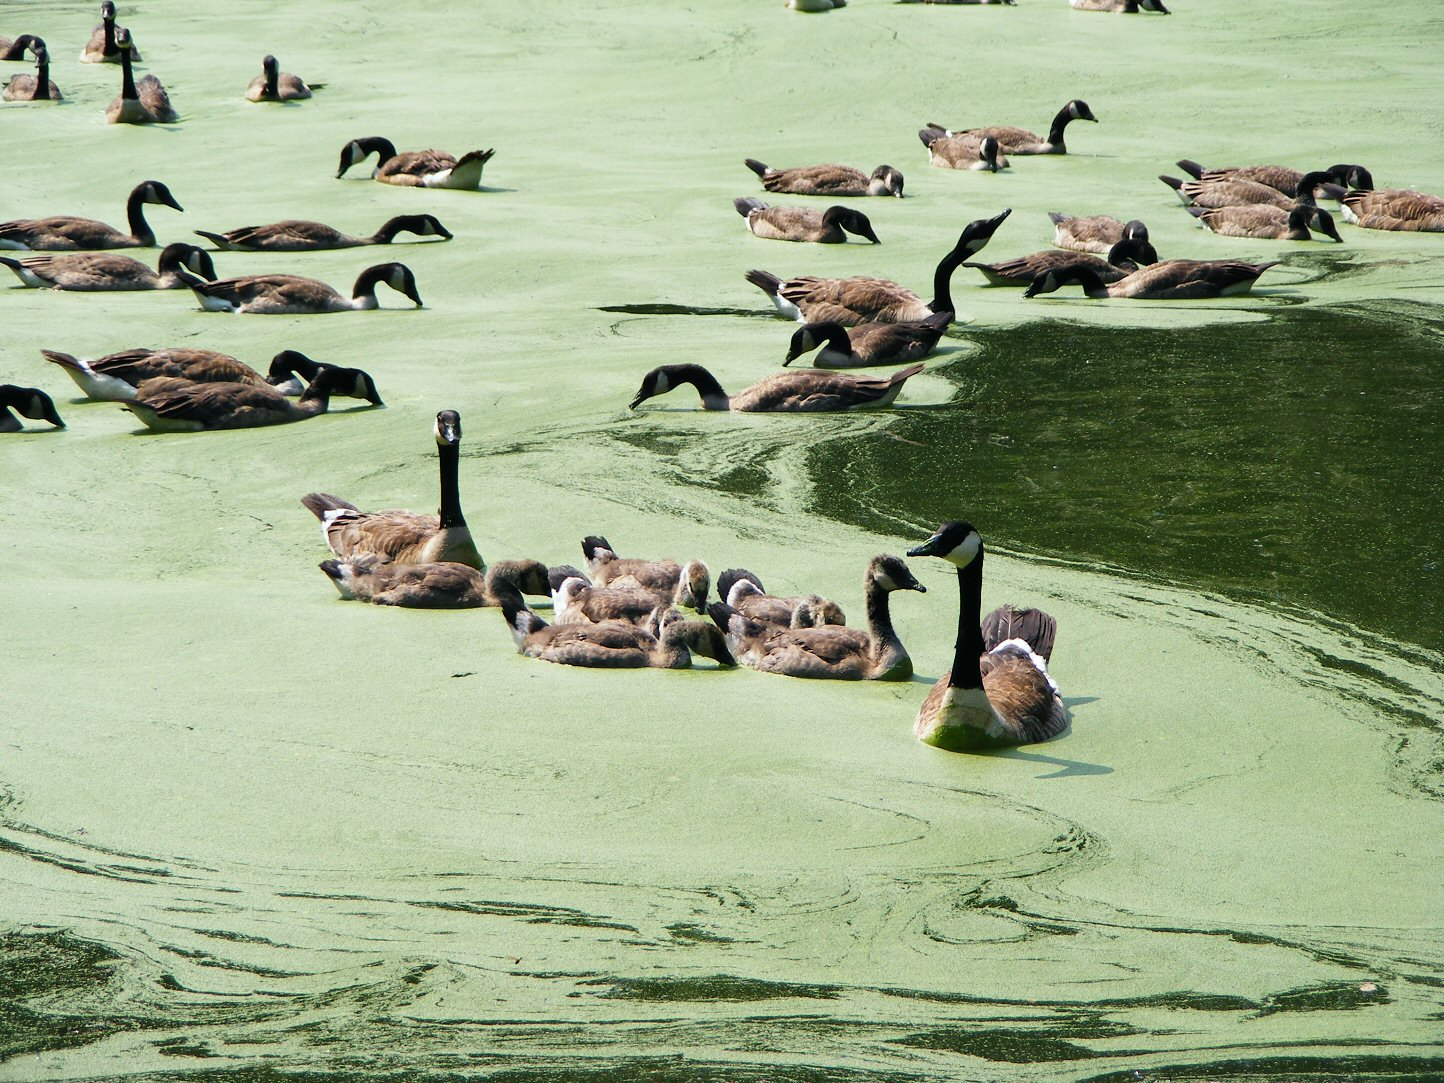 Many Geese in Green Water